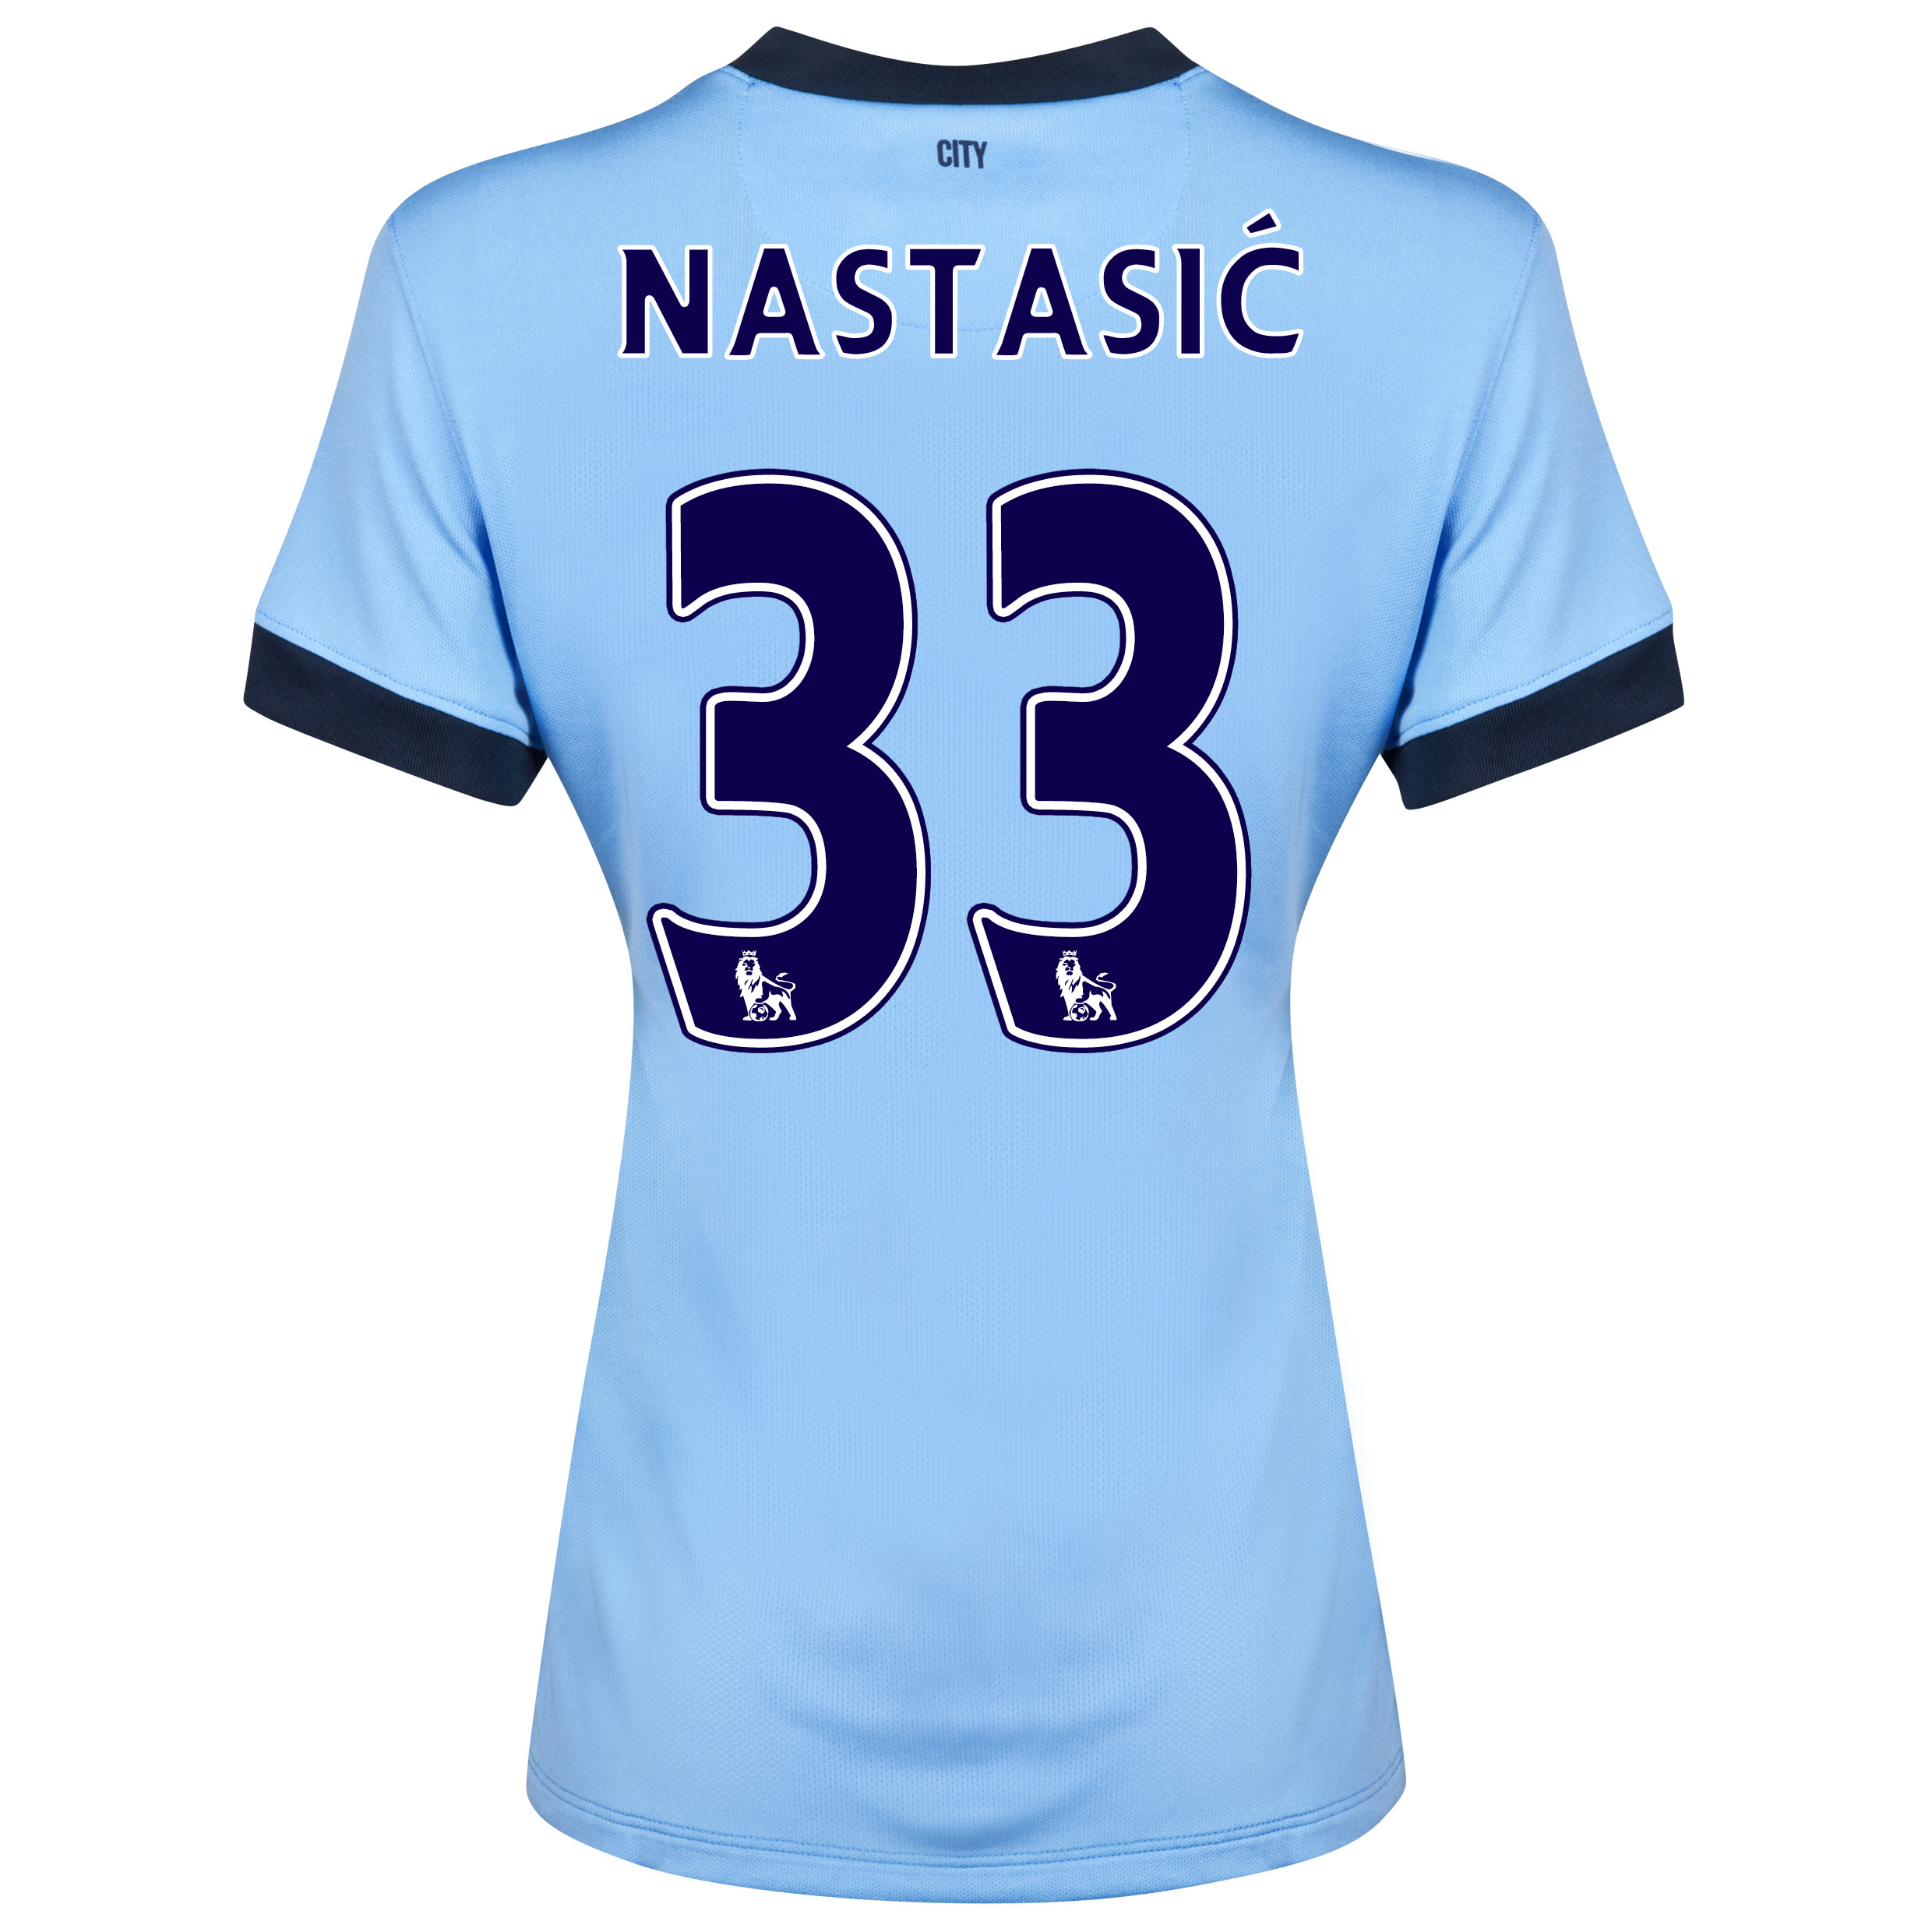 Manchester City Home Shirt 2014/15 - Womens Sky Blue with Nastasic 33 printing